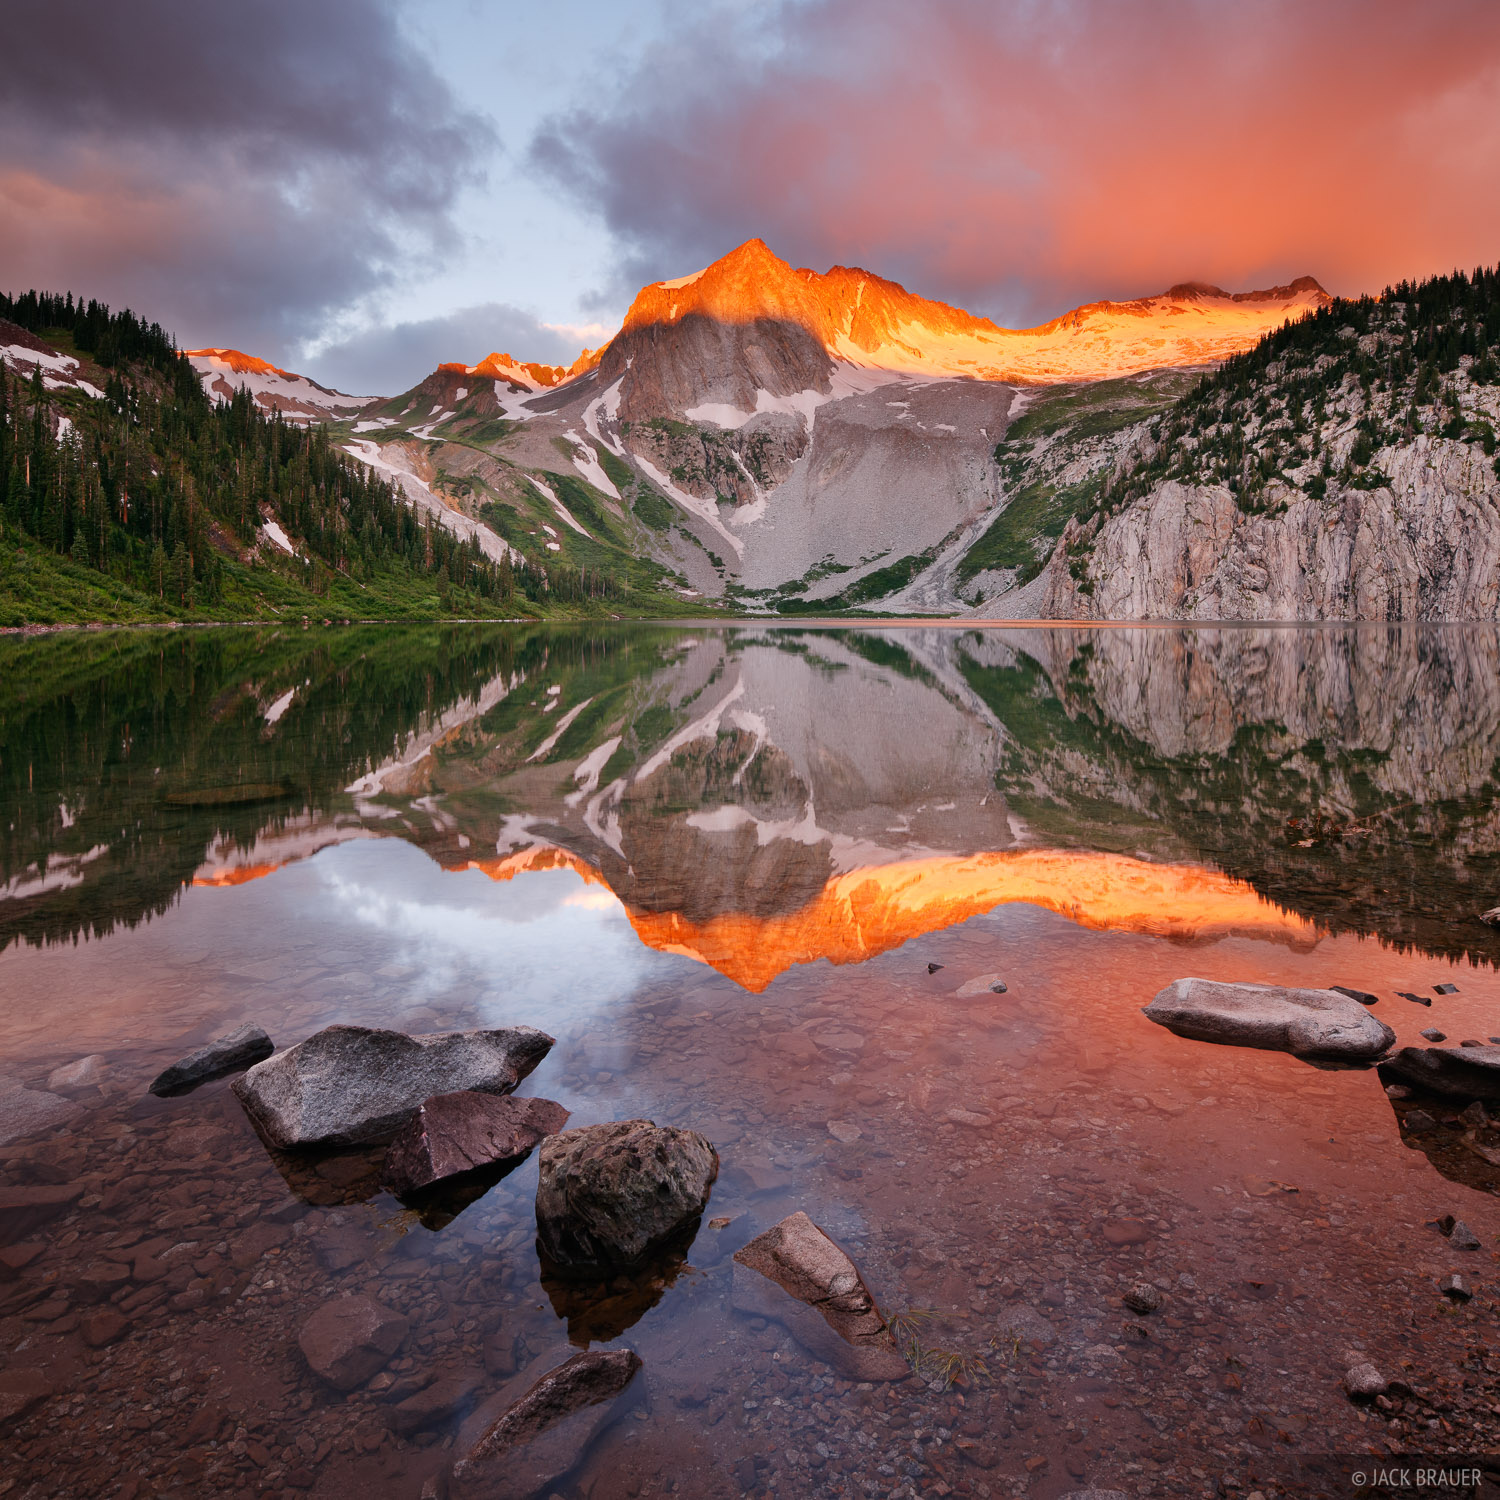 Snowmass Lake, Snowmass Mountain, sunrise, alpenglow, reflection, Elk Mountains, Colorado, photo